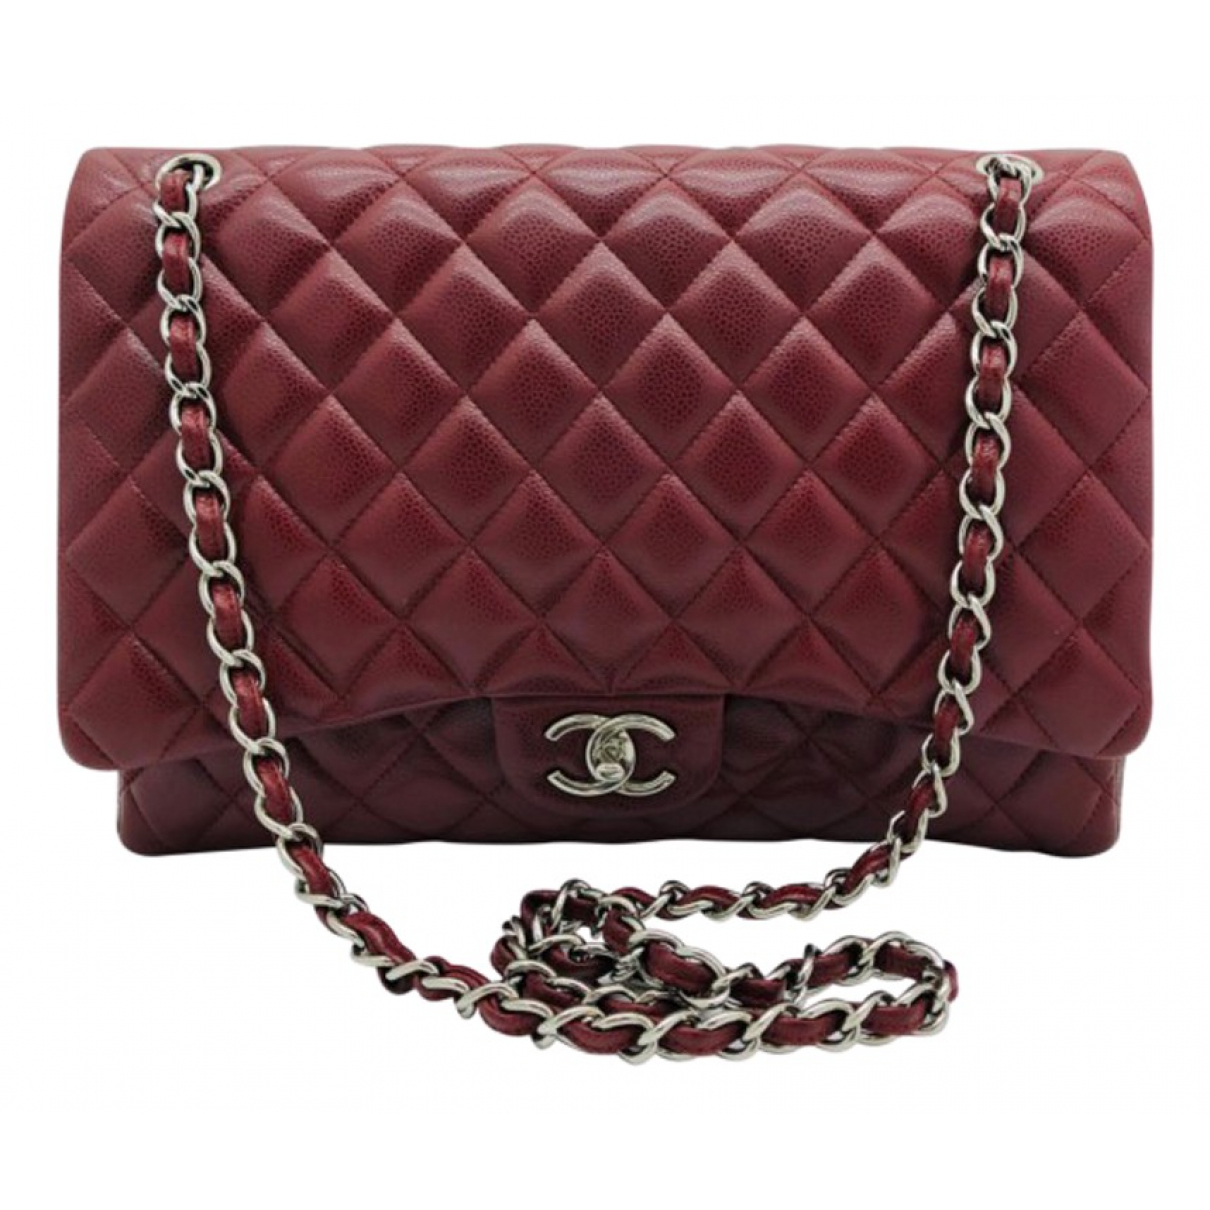 Chanel Timeless/Classique Handtasche in  Bordeauxrot Leder